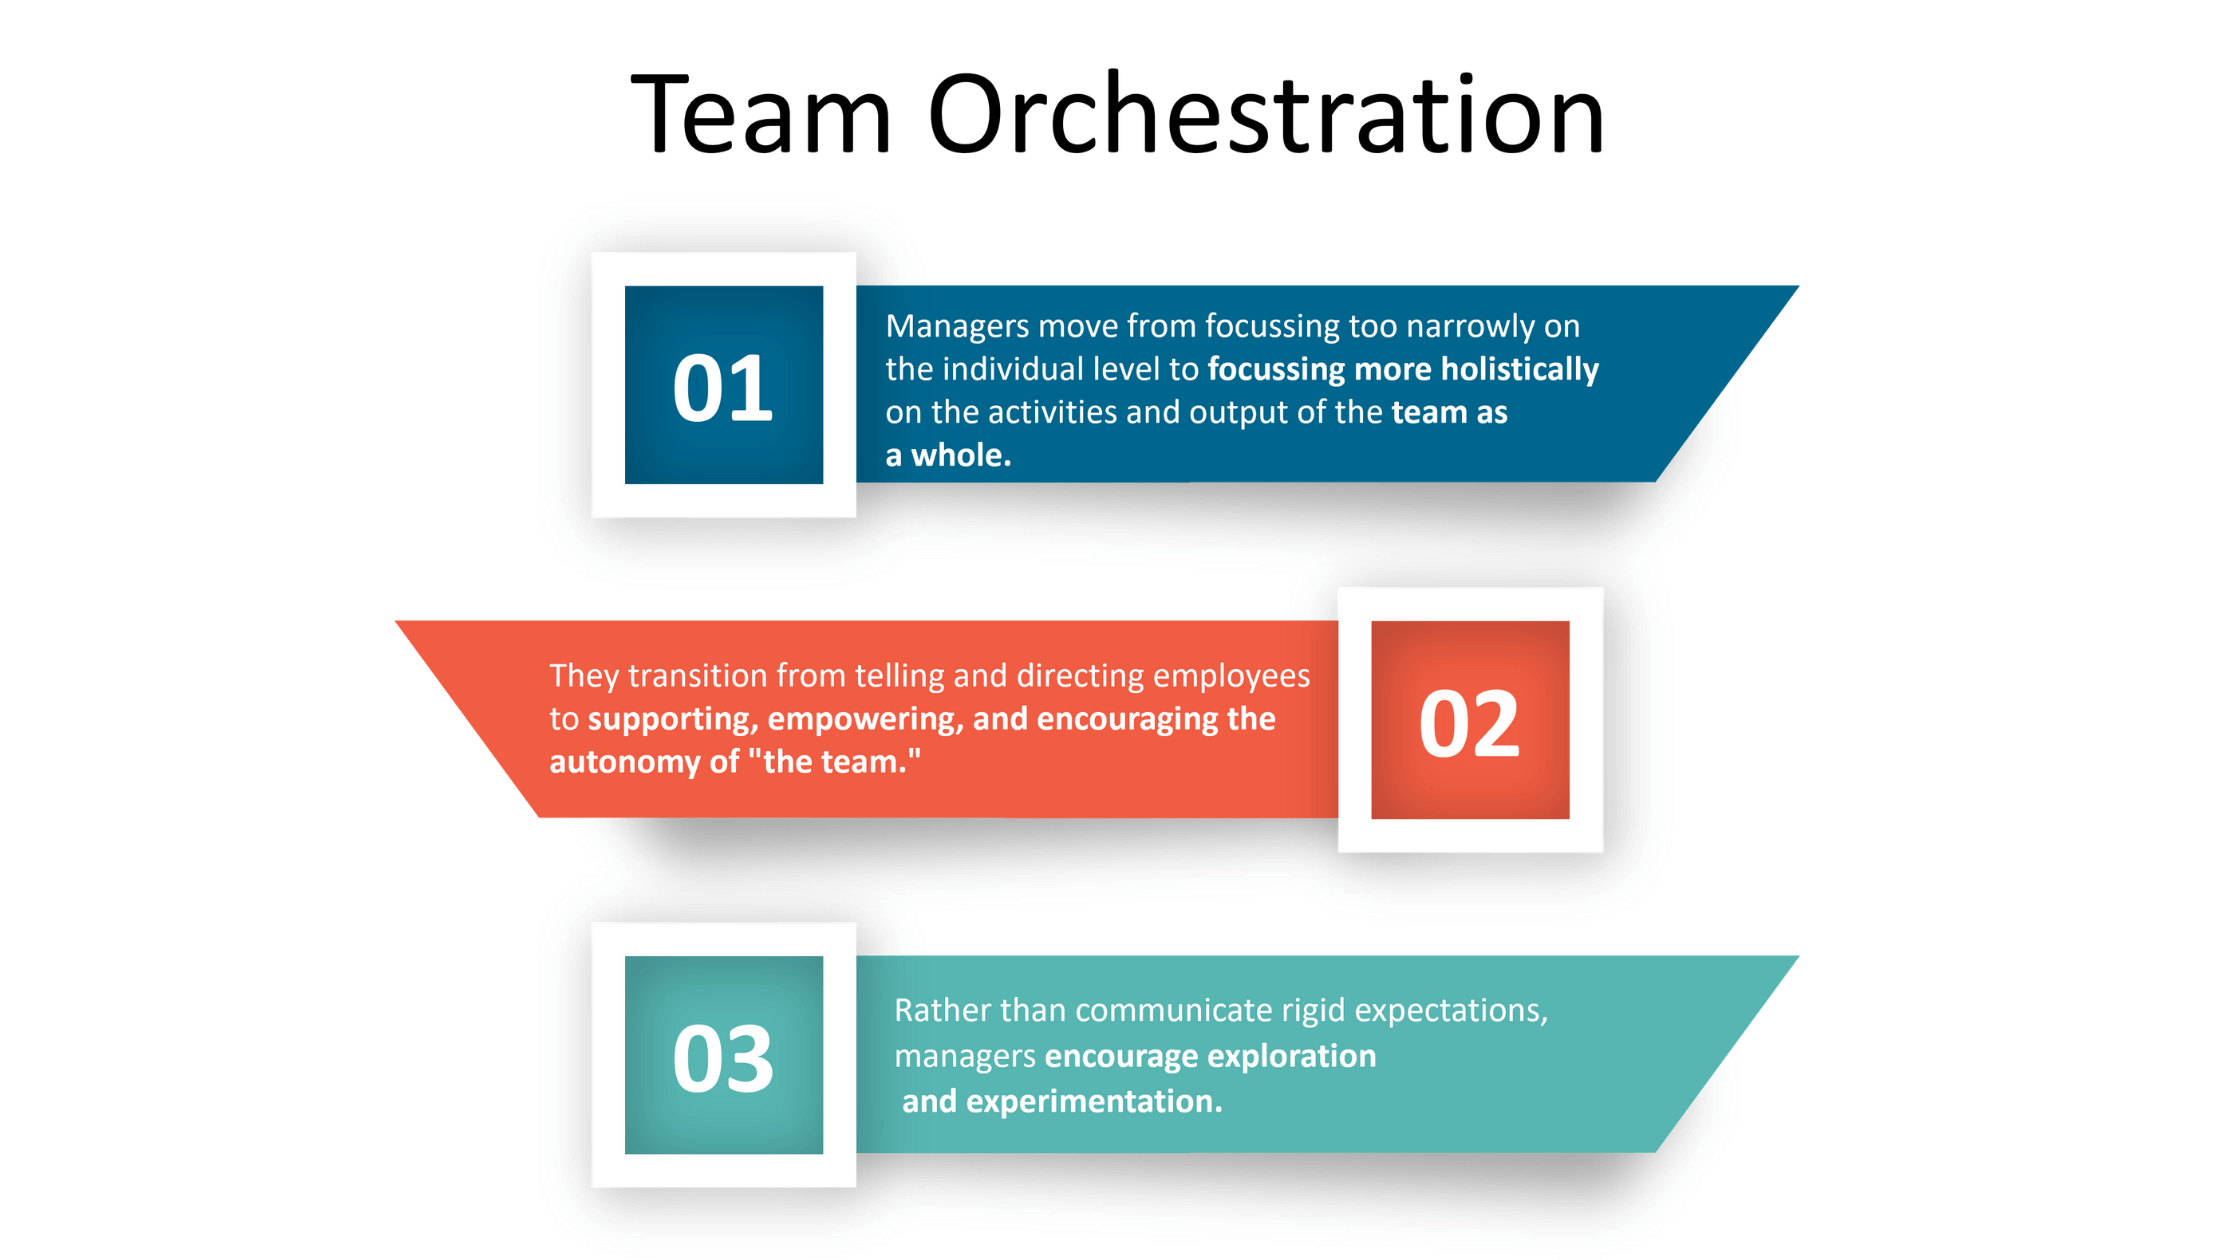 Team Orchestration